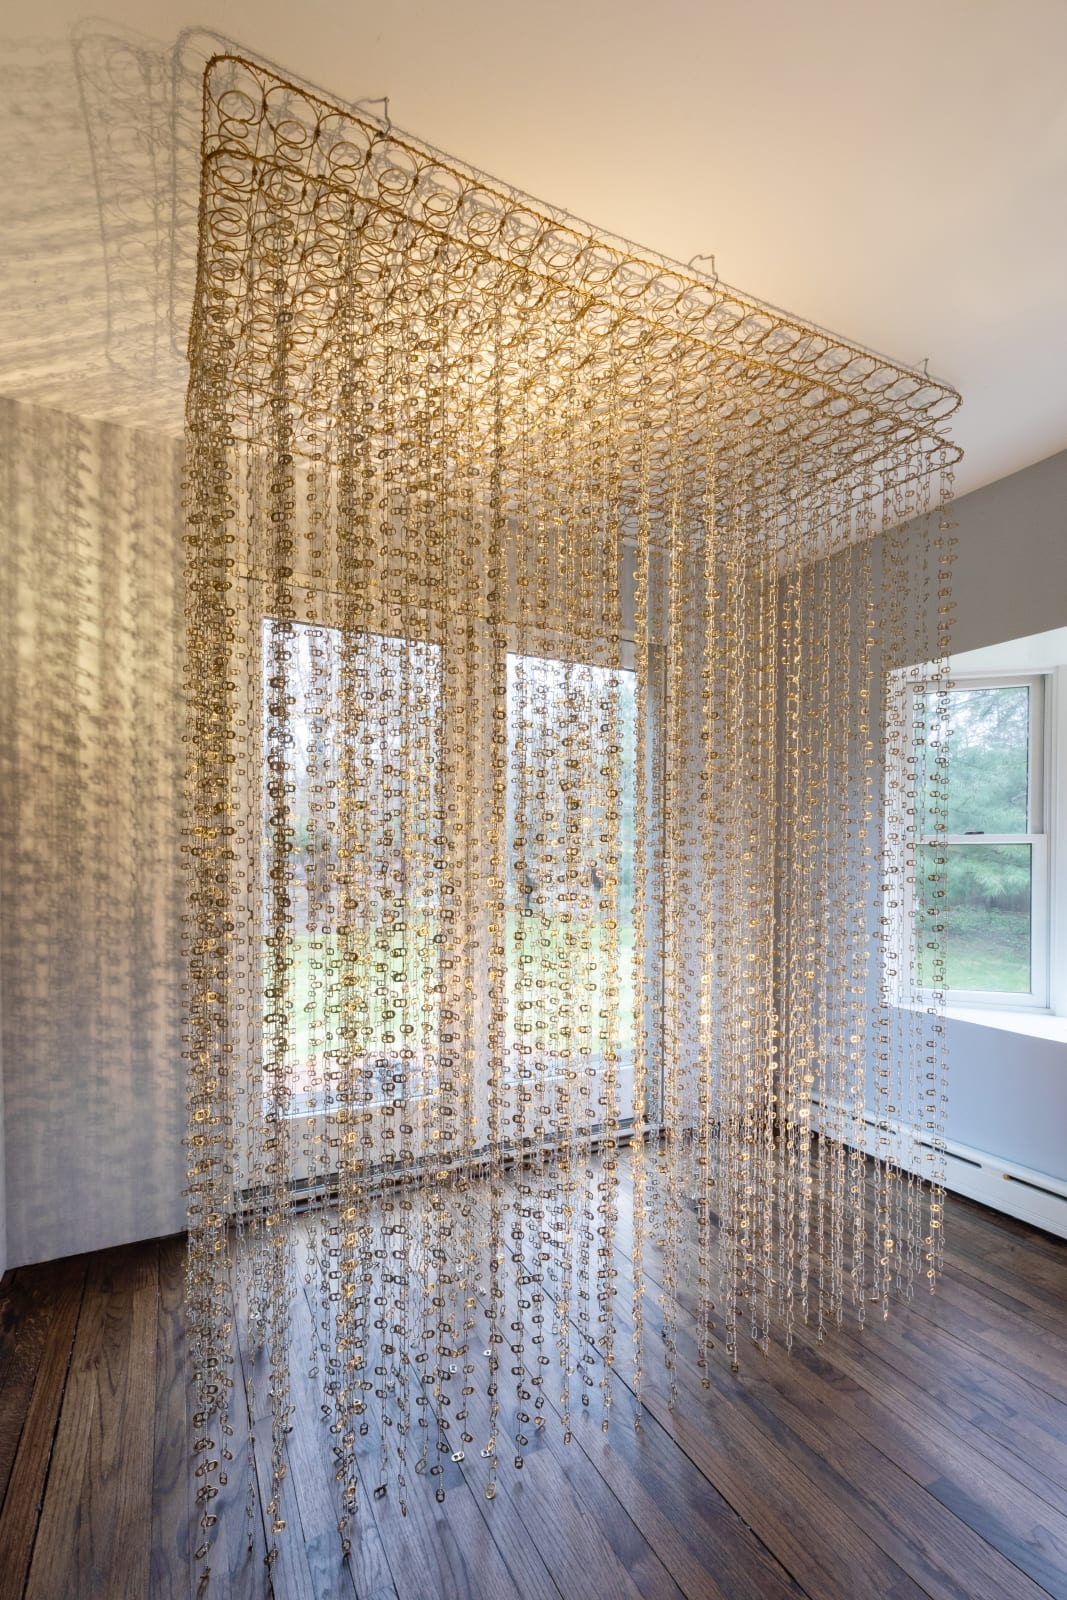 Alice Hope Proprioceptive 1, 2021 Box spring, corona tabs, ball chain, 72 x 30 x 118 in. (length variable to ceiling height) (AHo 38) $24,000